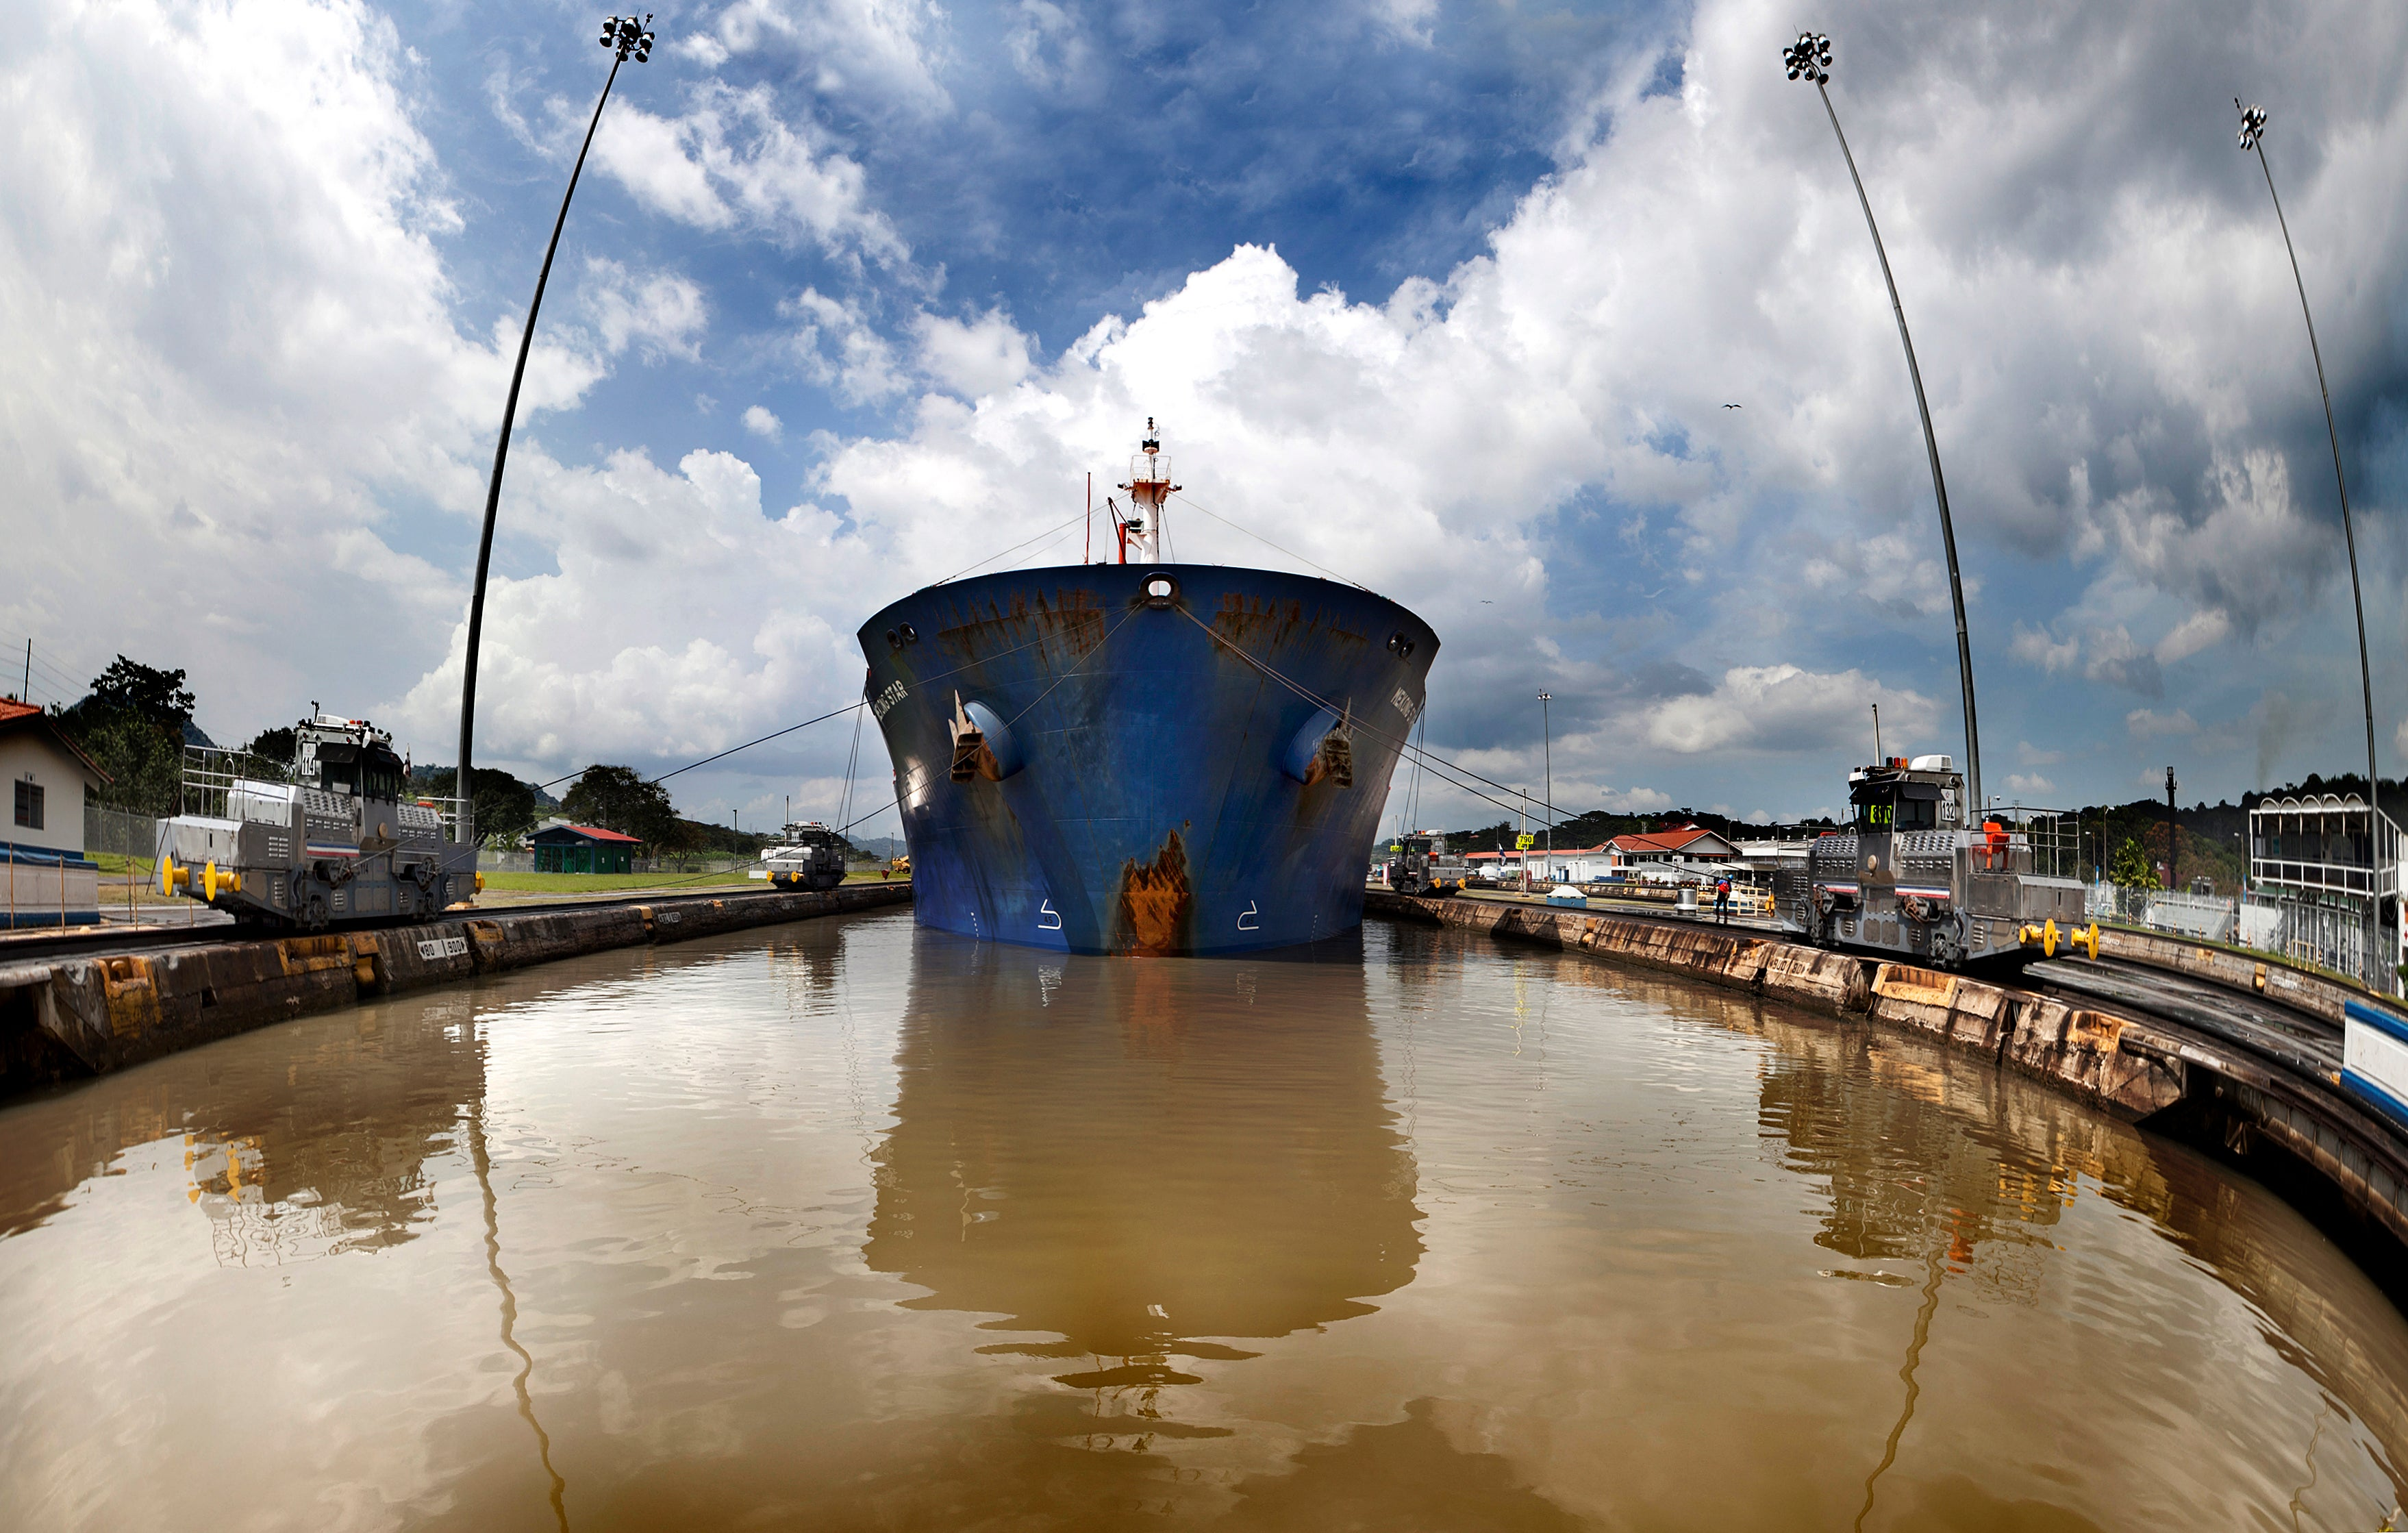 panama canal short essay 2016-2-20  panama panama has almost with worldly buzz because of the canal paris for wealthy, but brittany, normandy and the dordogne, a short.